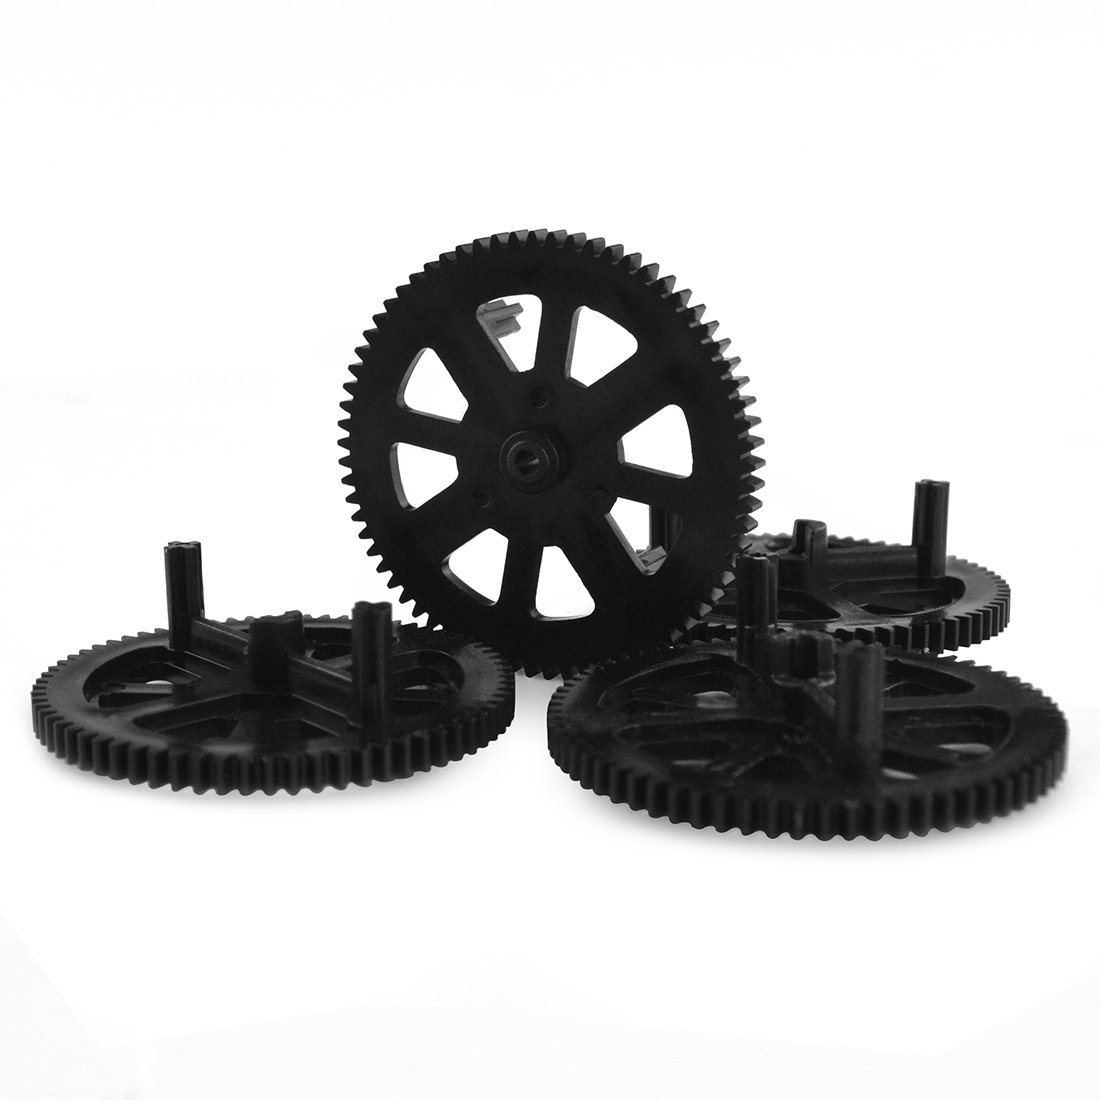 Black Parrot AR Drone 2.0 /& Power Edition Replacement Motor Gears and Shaft Repair Parts Kit Upgrade Gears